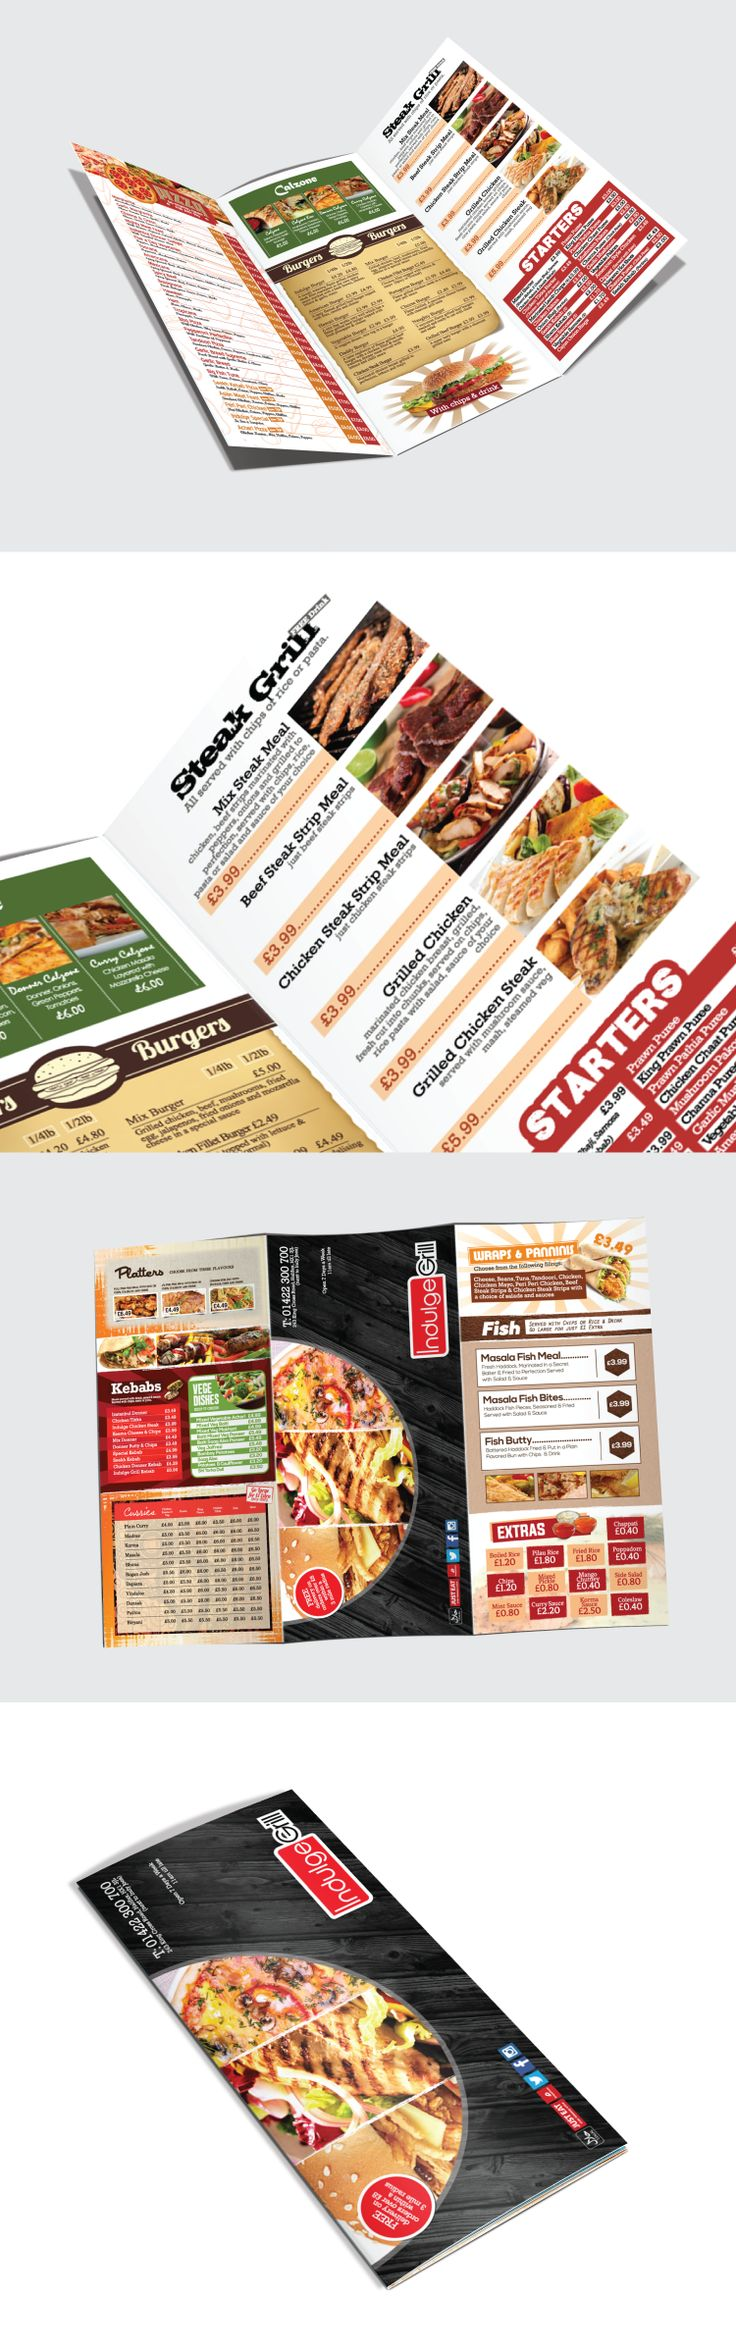 Indulge Grill is a takeaway restaurant in the UK that does it all: pizzas, steaks, curries, burgers...you name it.  #Branding #Menu #Food #Graphic Design #Printing #Logo #Takeaway #Fast Food